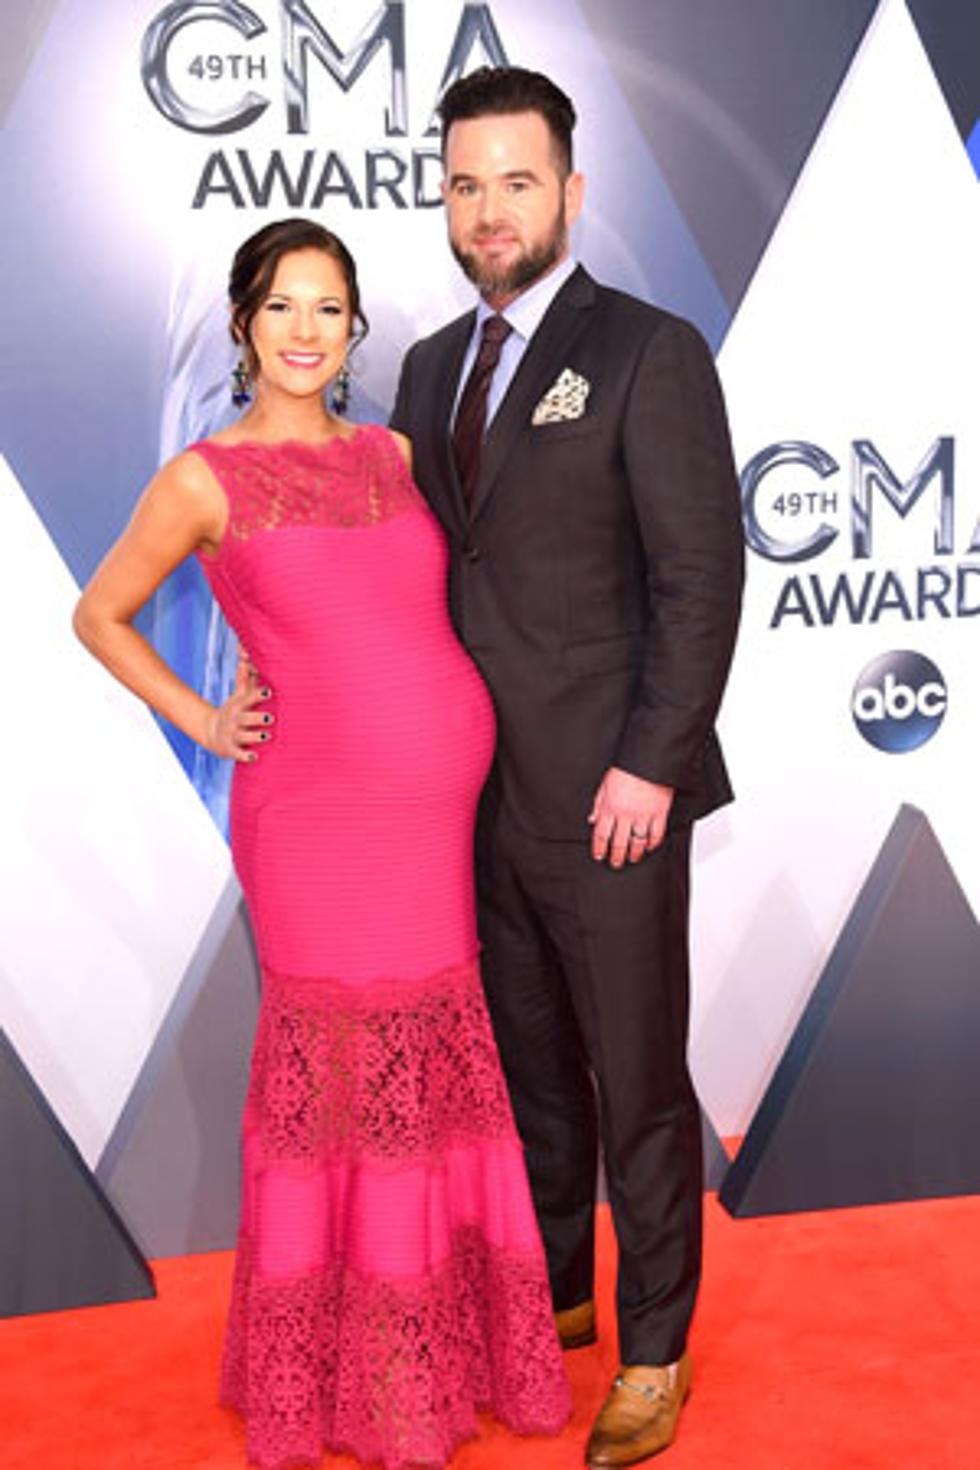 David Nail and Wife Expecting Twins